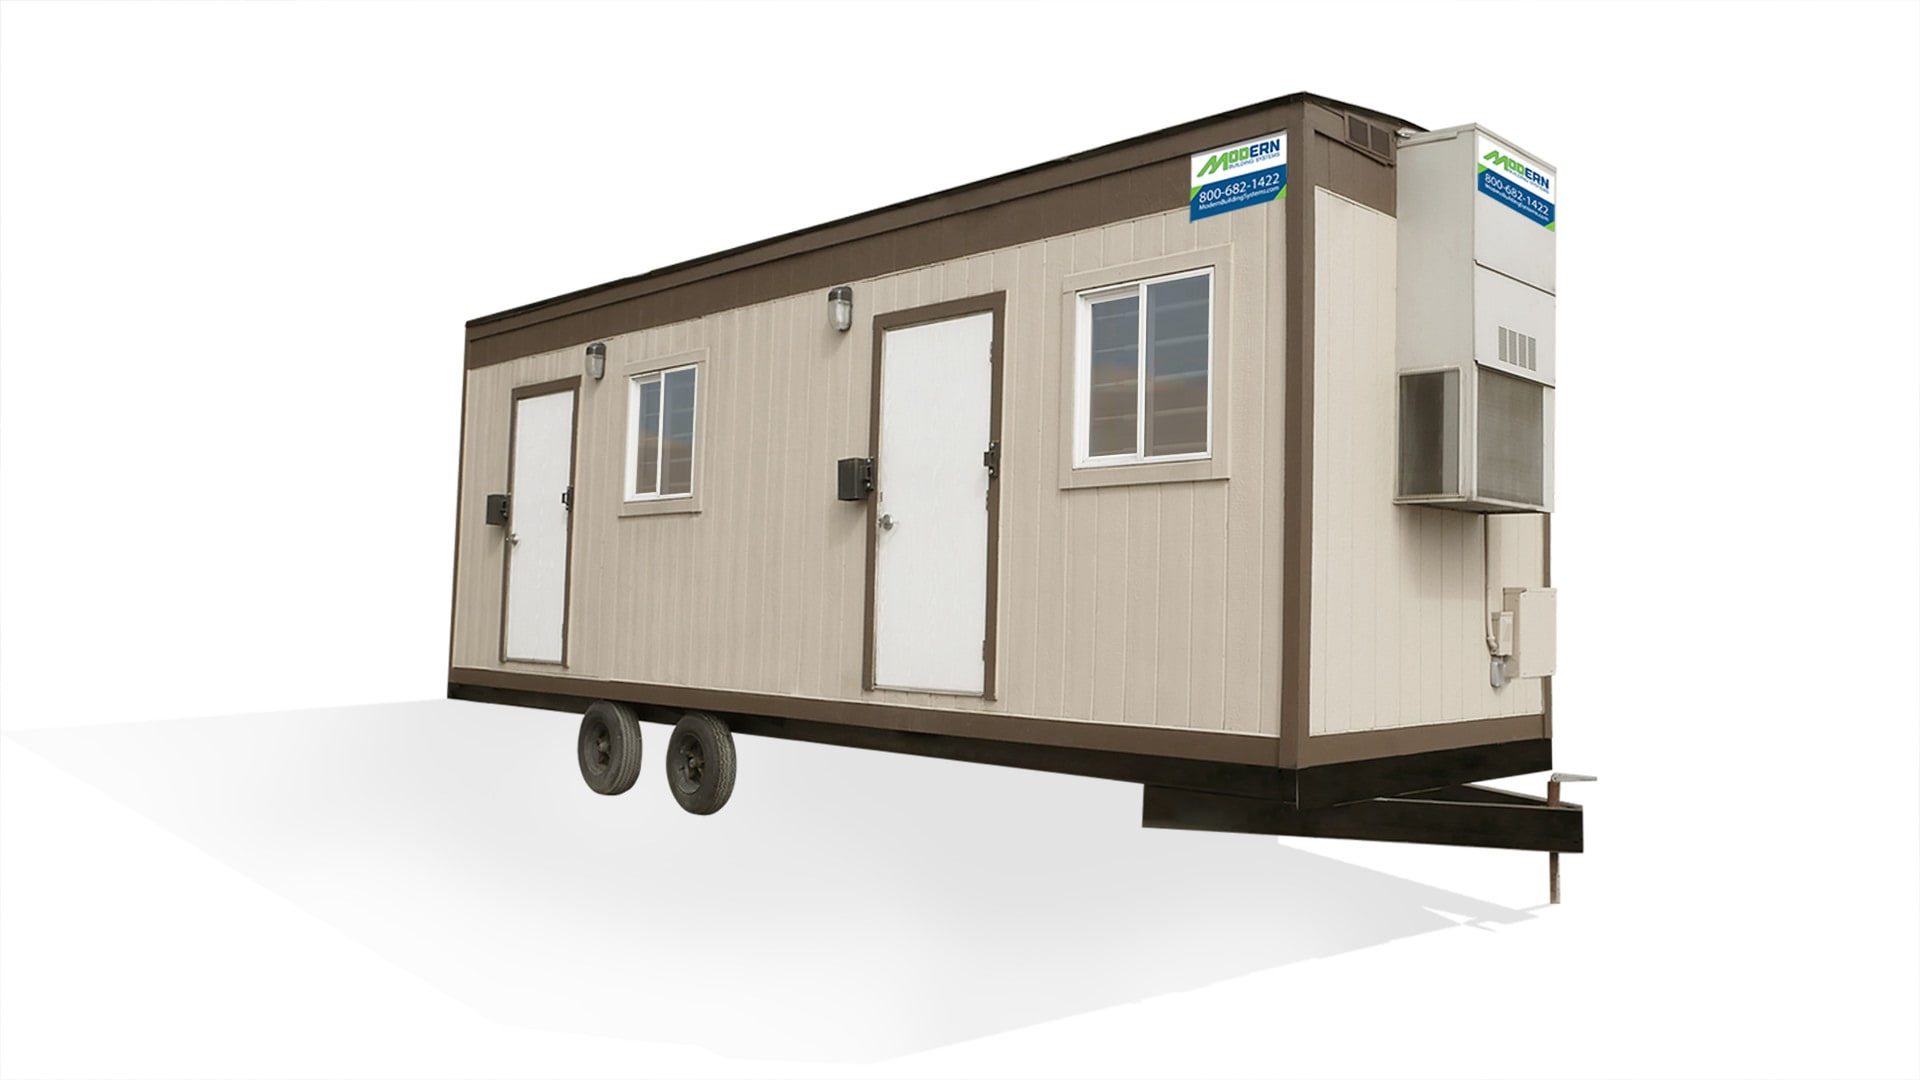 8'x28' Mobile Office Trailer